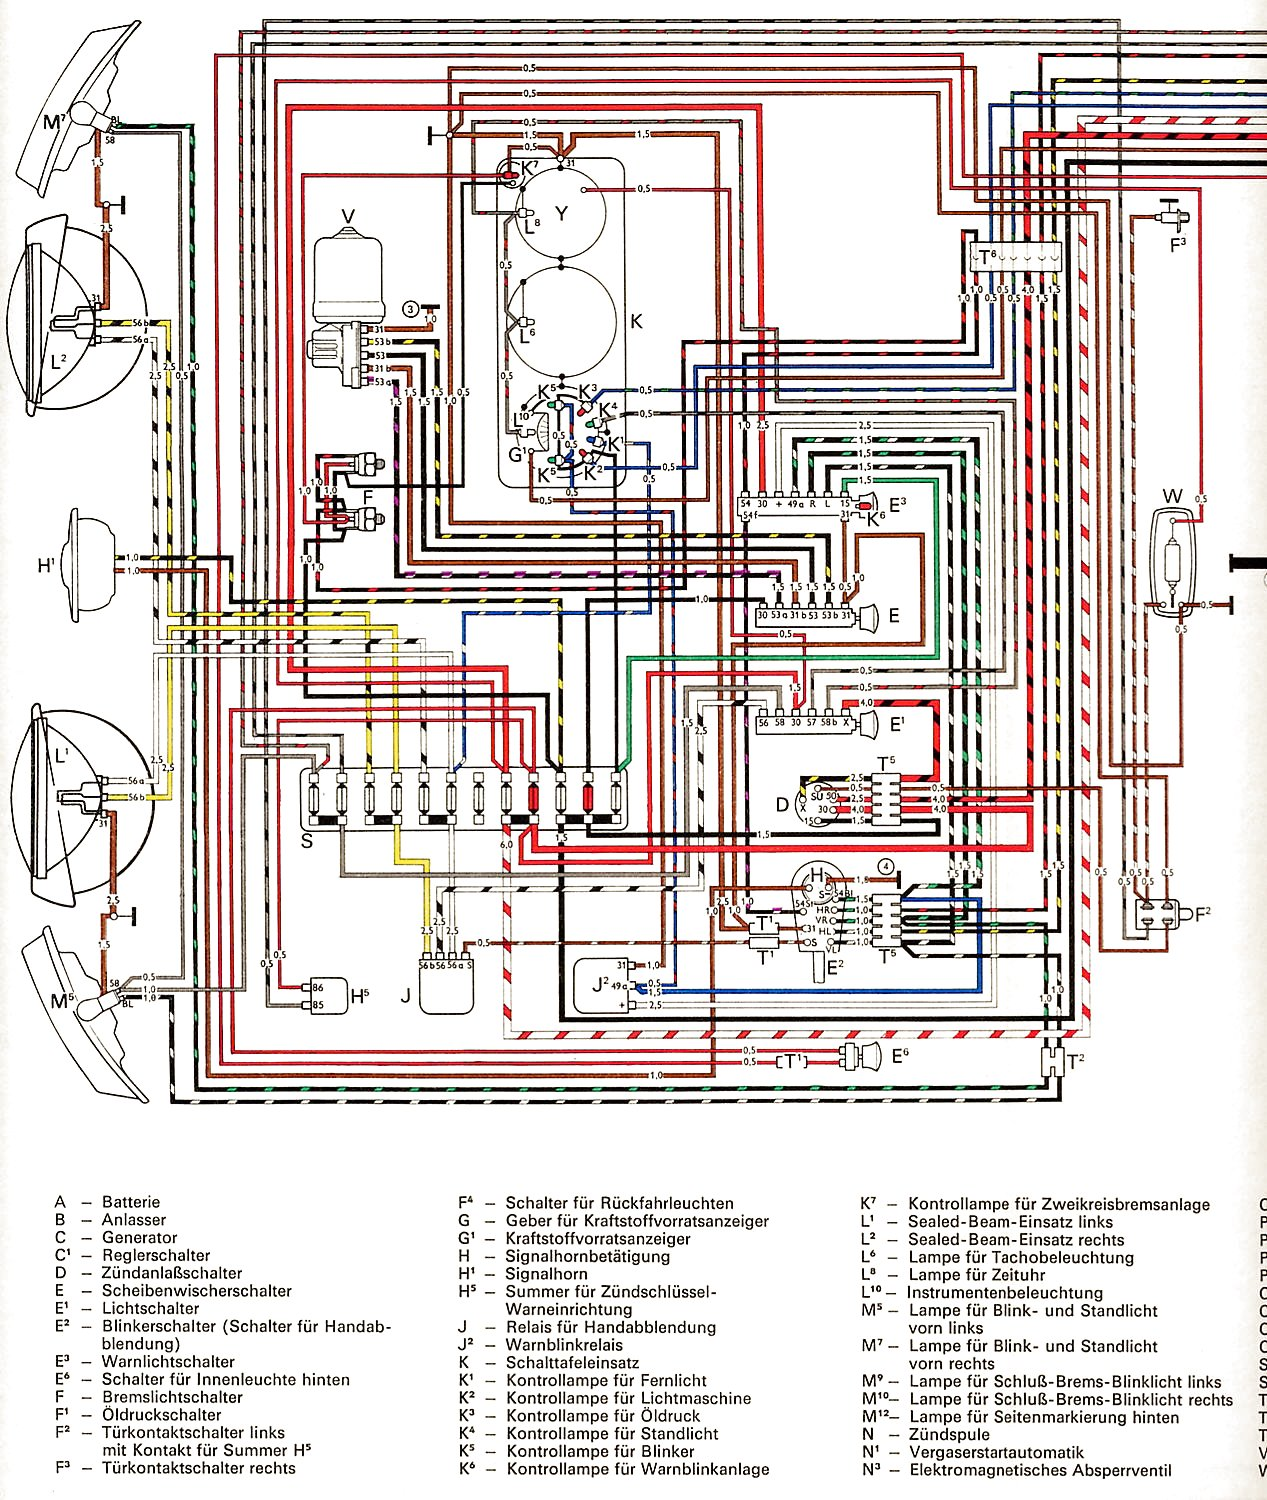 1970 camaro radio wiring diagram vw wiring diagrams radio wiring diagram beetle 1970